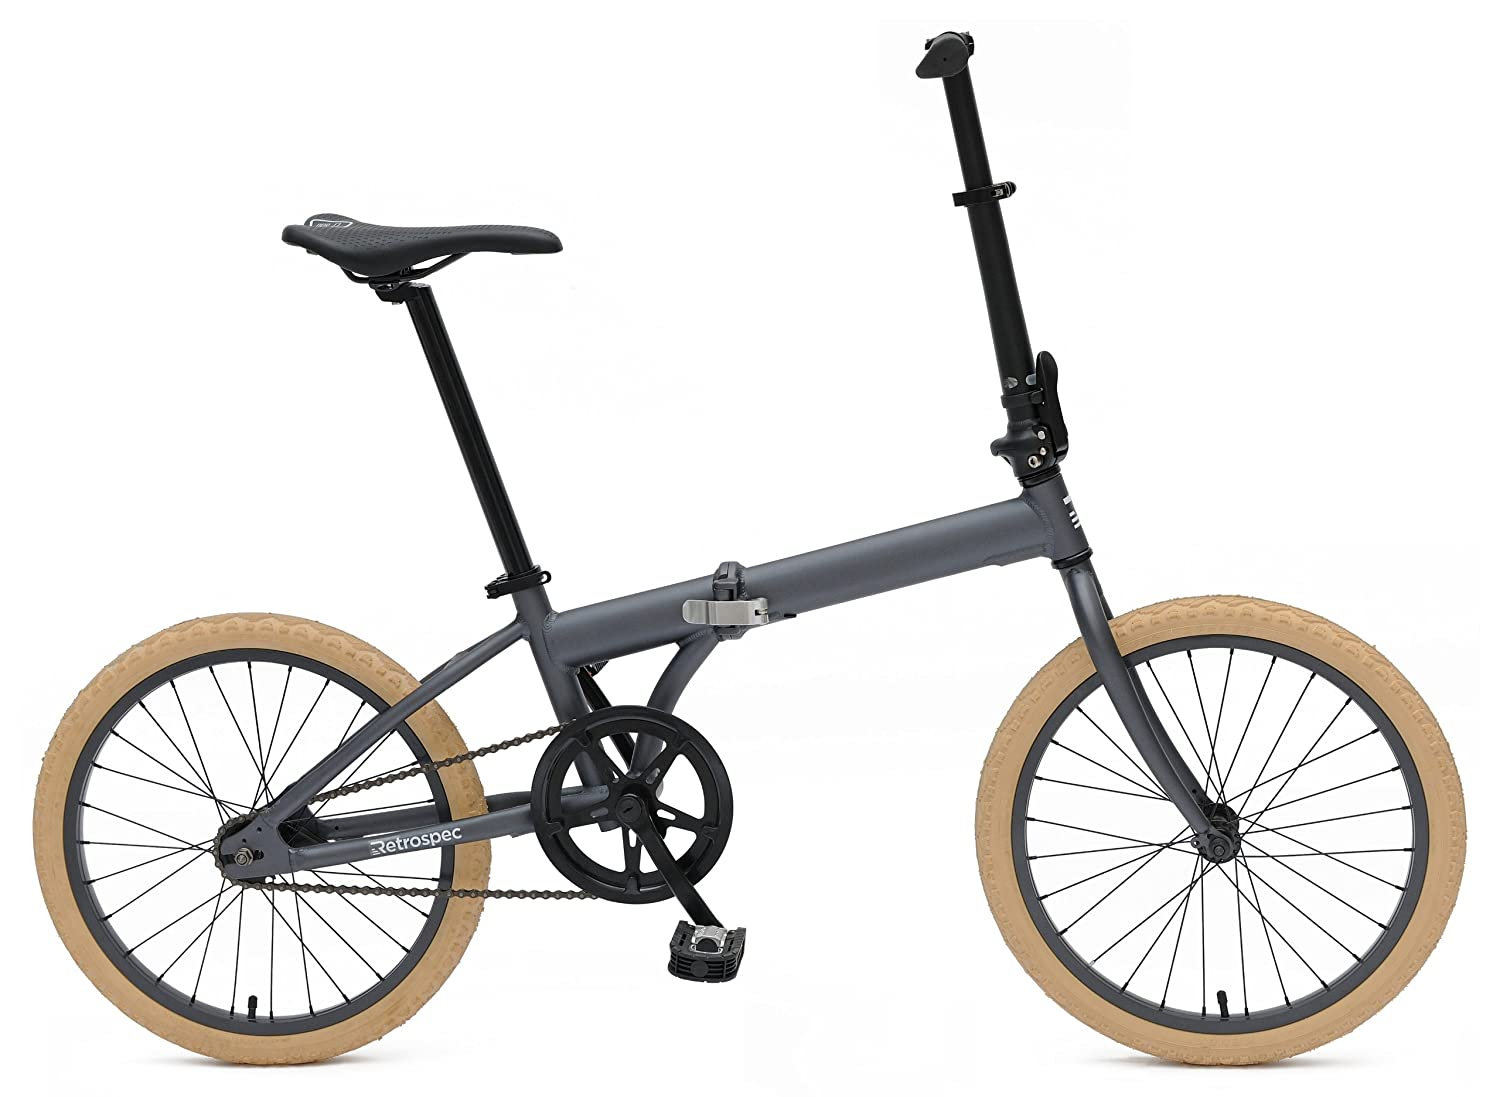 Top 10 Best Folding Bikes Reviews in 2020 3